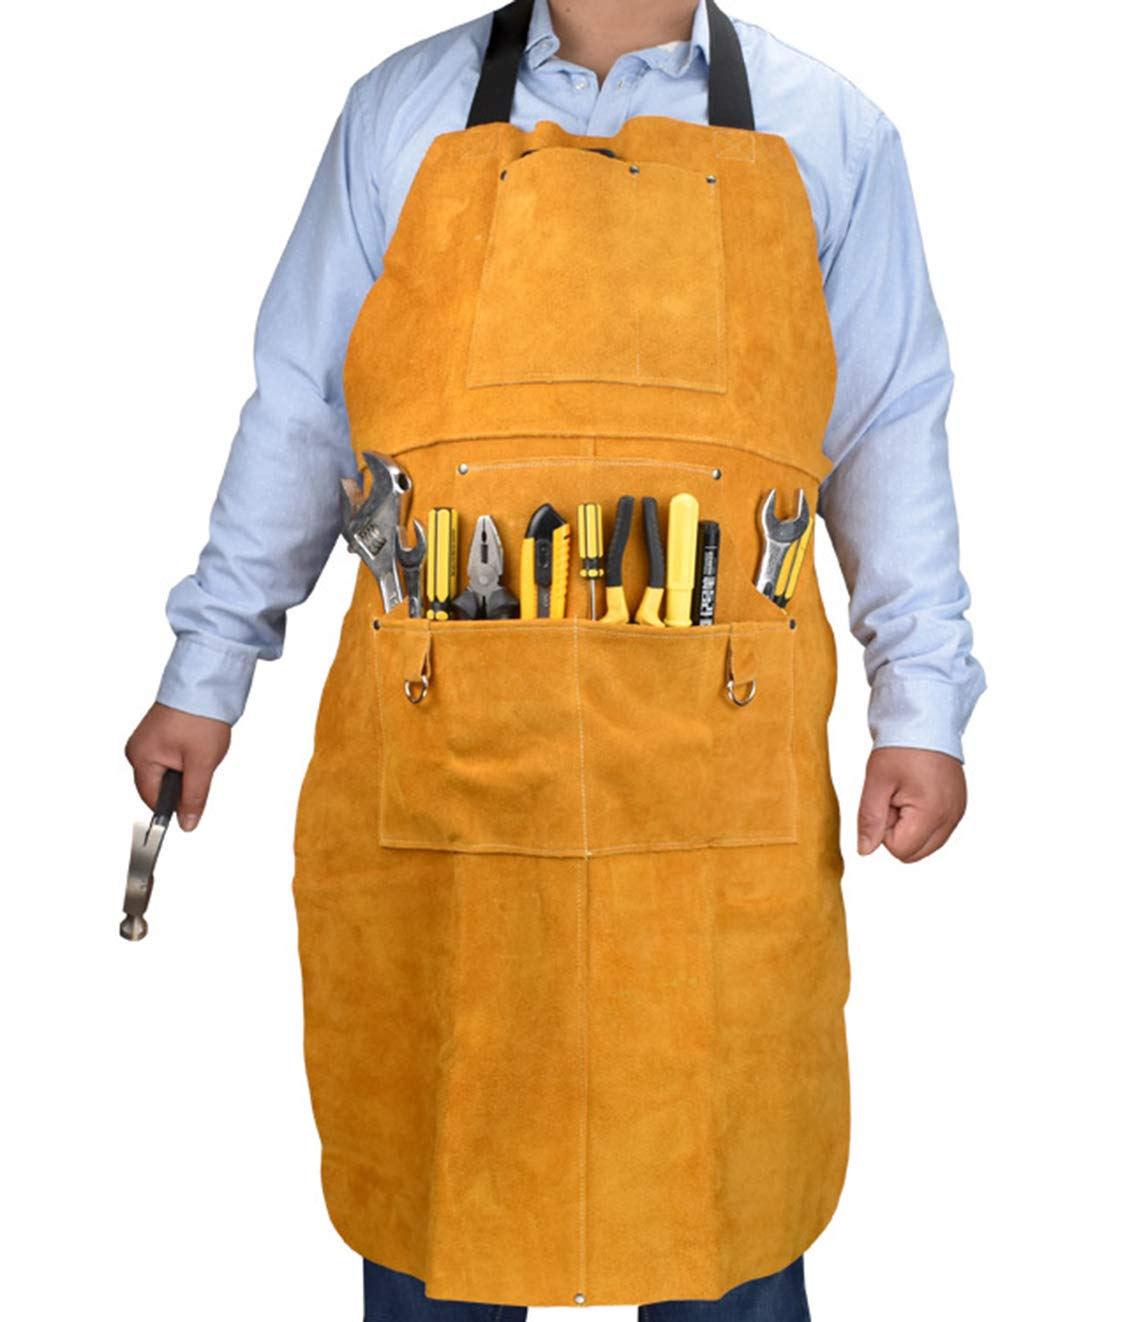 Multiple Pockets Woodworking Apron Cowhide Leather Welding High Temperature Safety Wear Apron Gardening Apron with Tool Pockets by CPTDCL